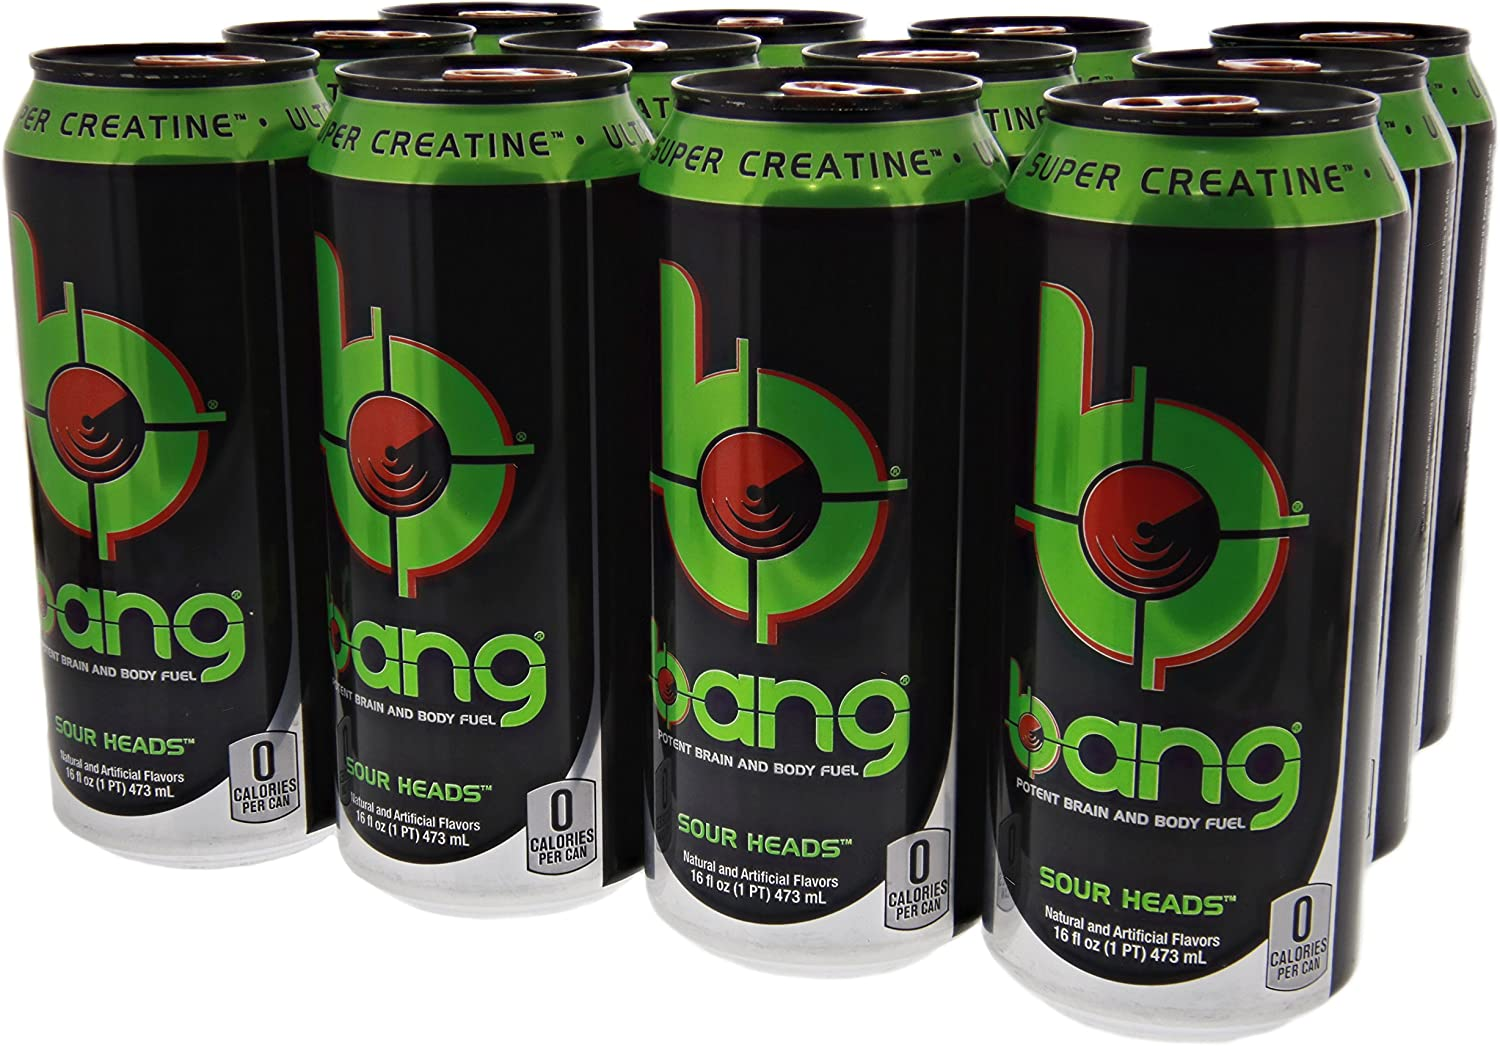 VPX Bang - Sour Heads - 12 per Case - 16 fl oz (1 PT) 473 ml